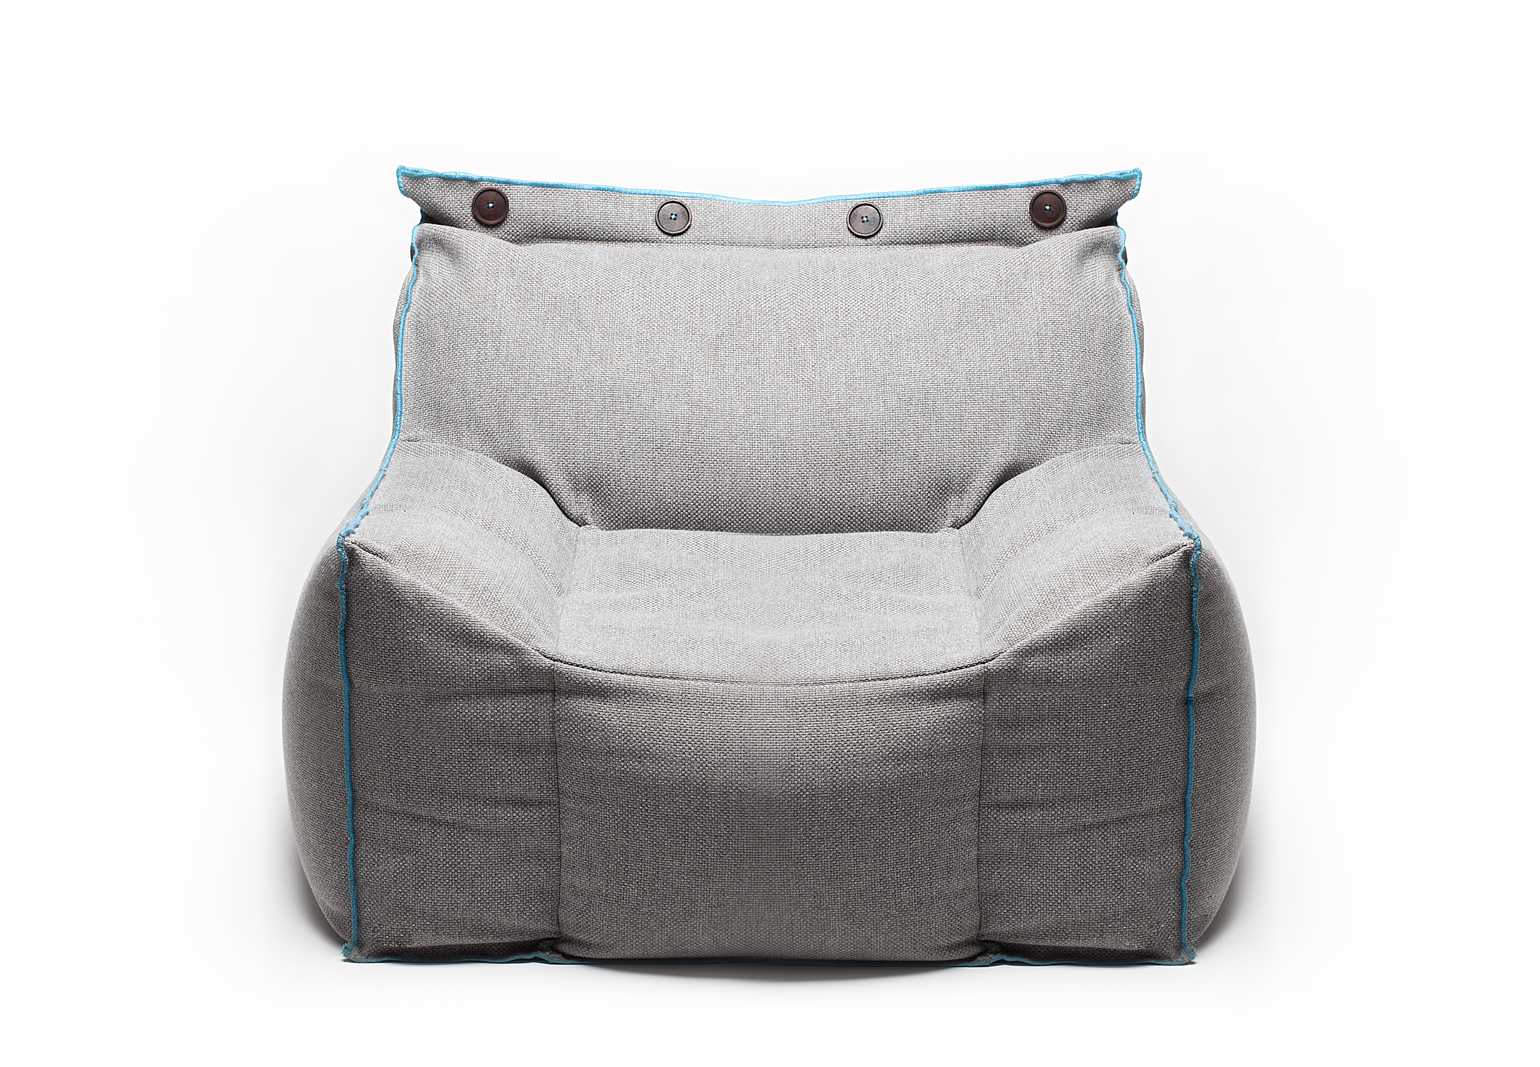 modern gray beanbag armchair with blue Cordonnet stitching